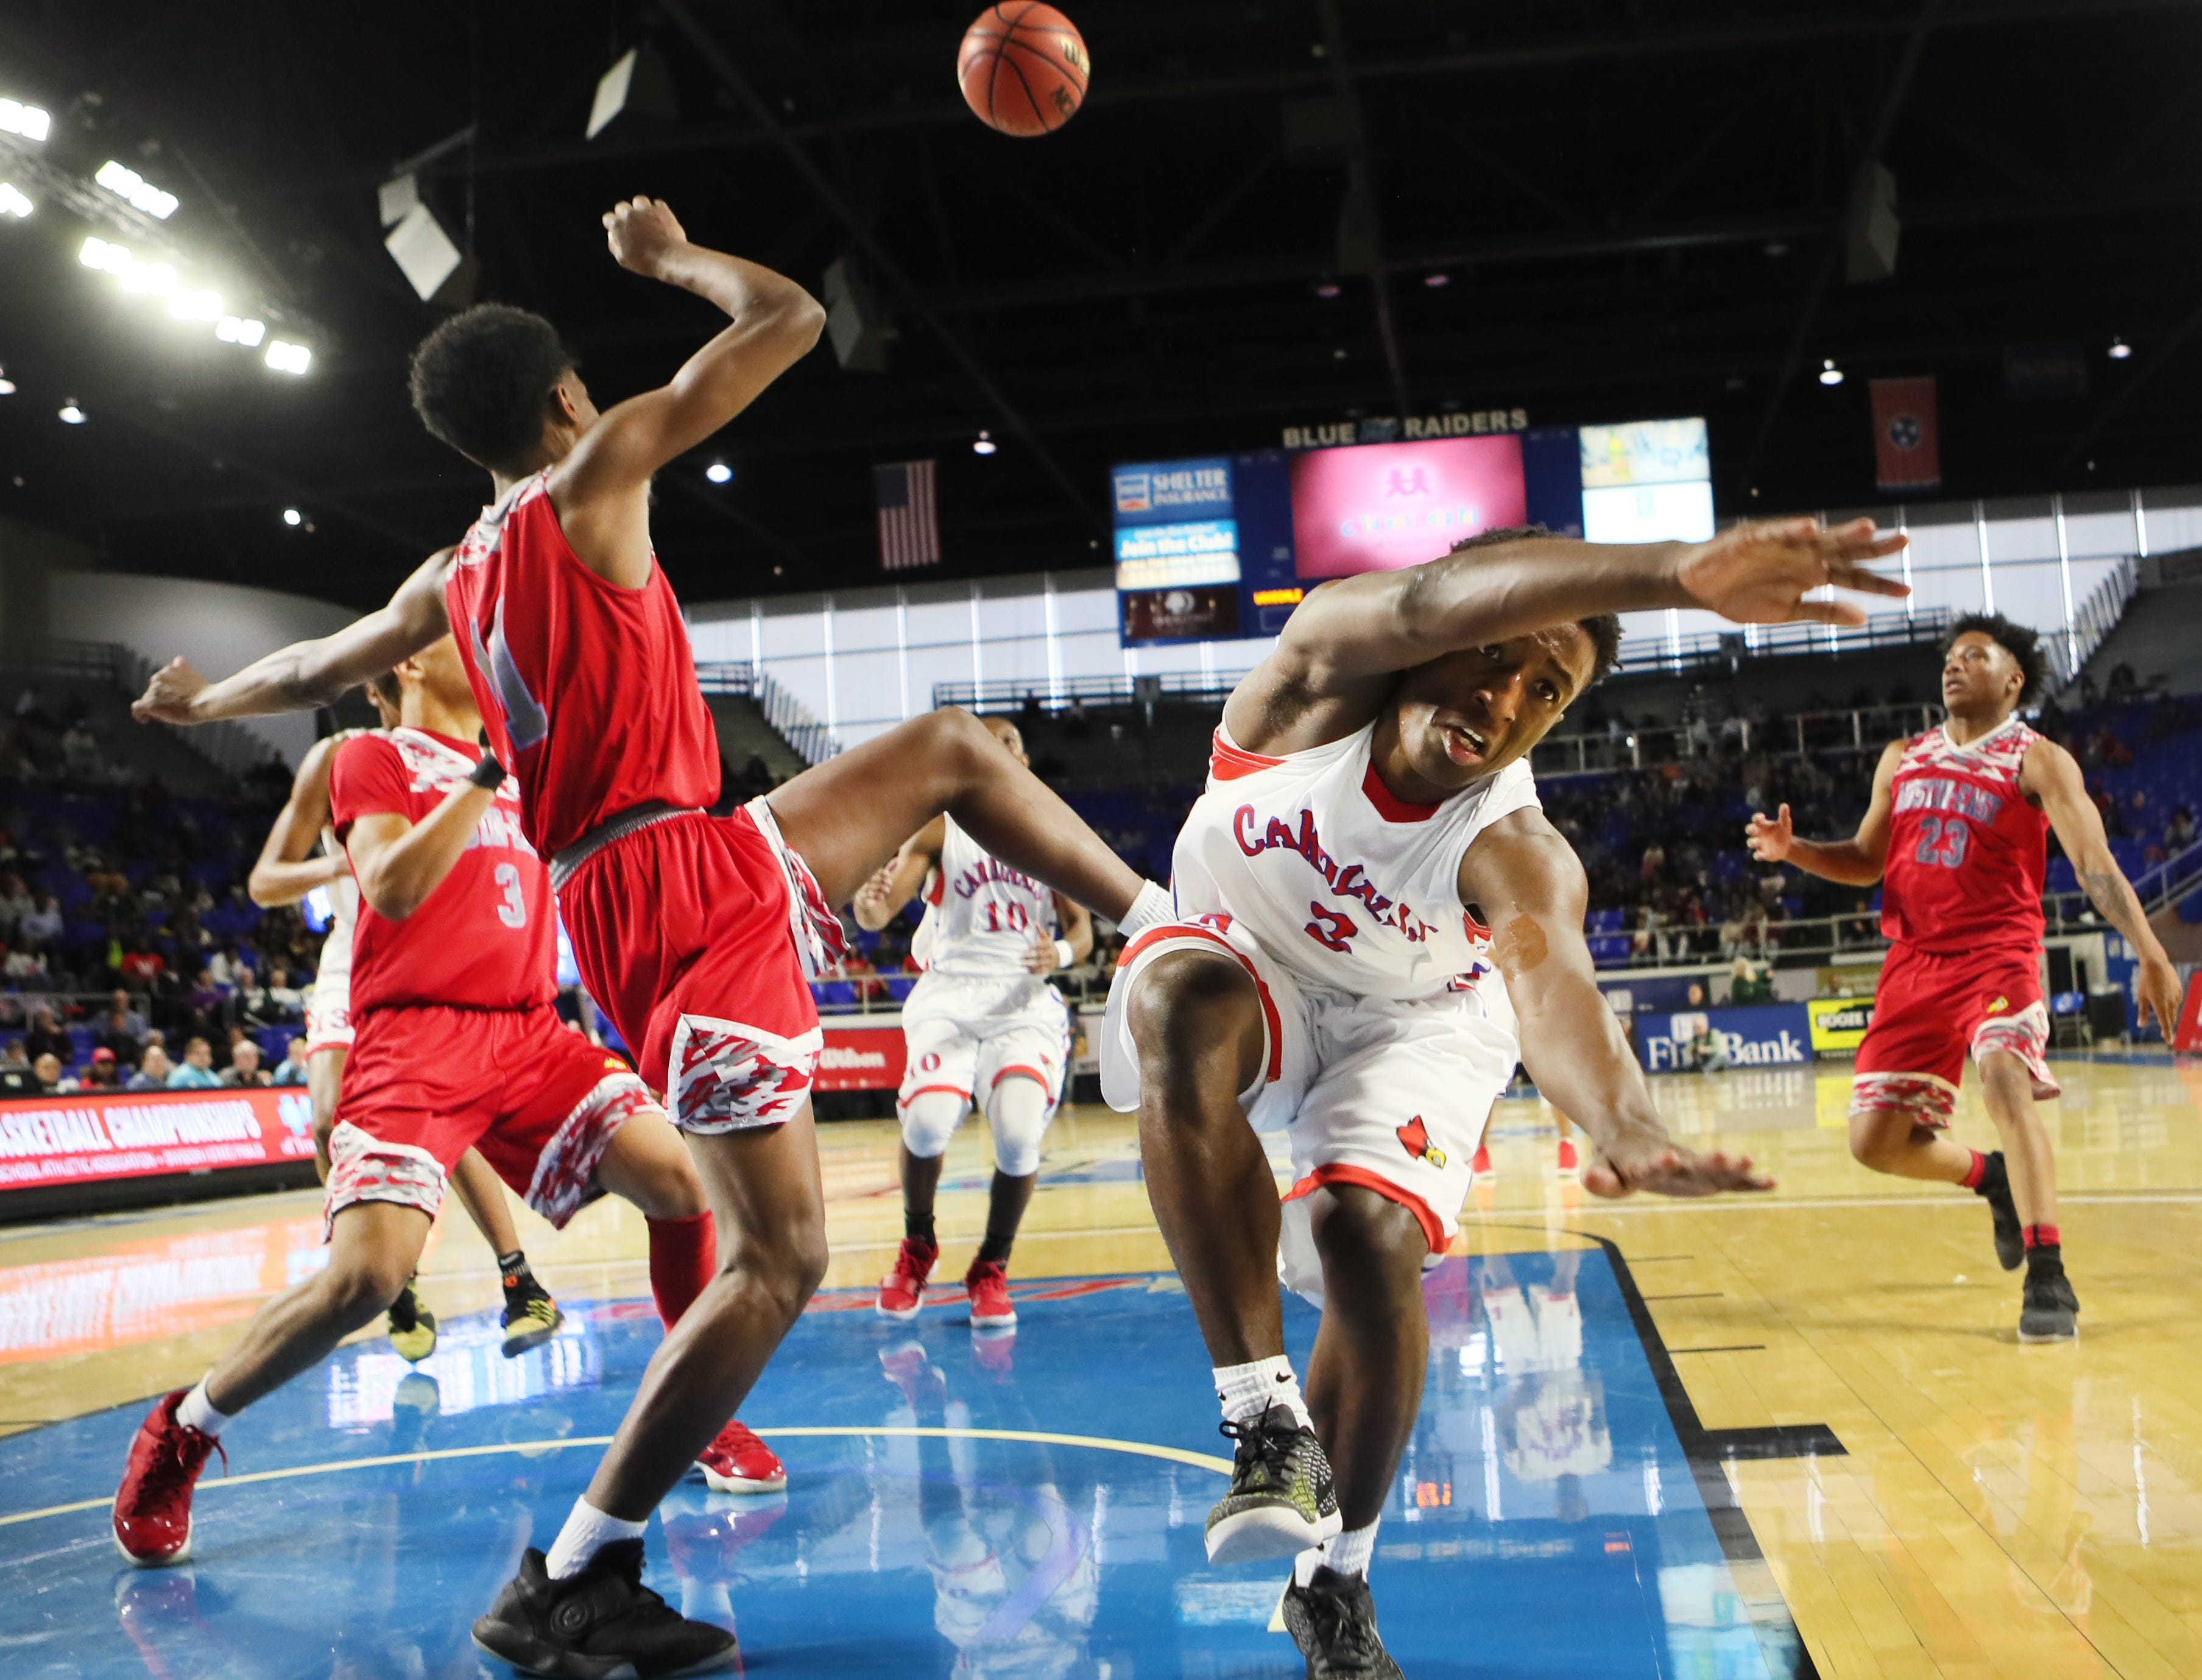 Wooddale's Alvin Miles loses control of the ball after being fouled by Austin-East's Joshua Harris during the TSSAA Division I basketball state tournament in Murfreesboro on Wednesday, March 13, 2019.